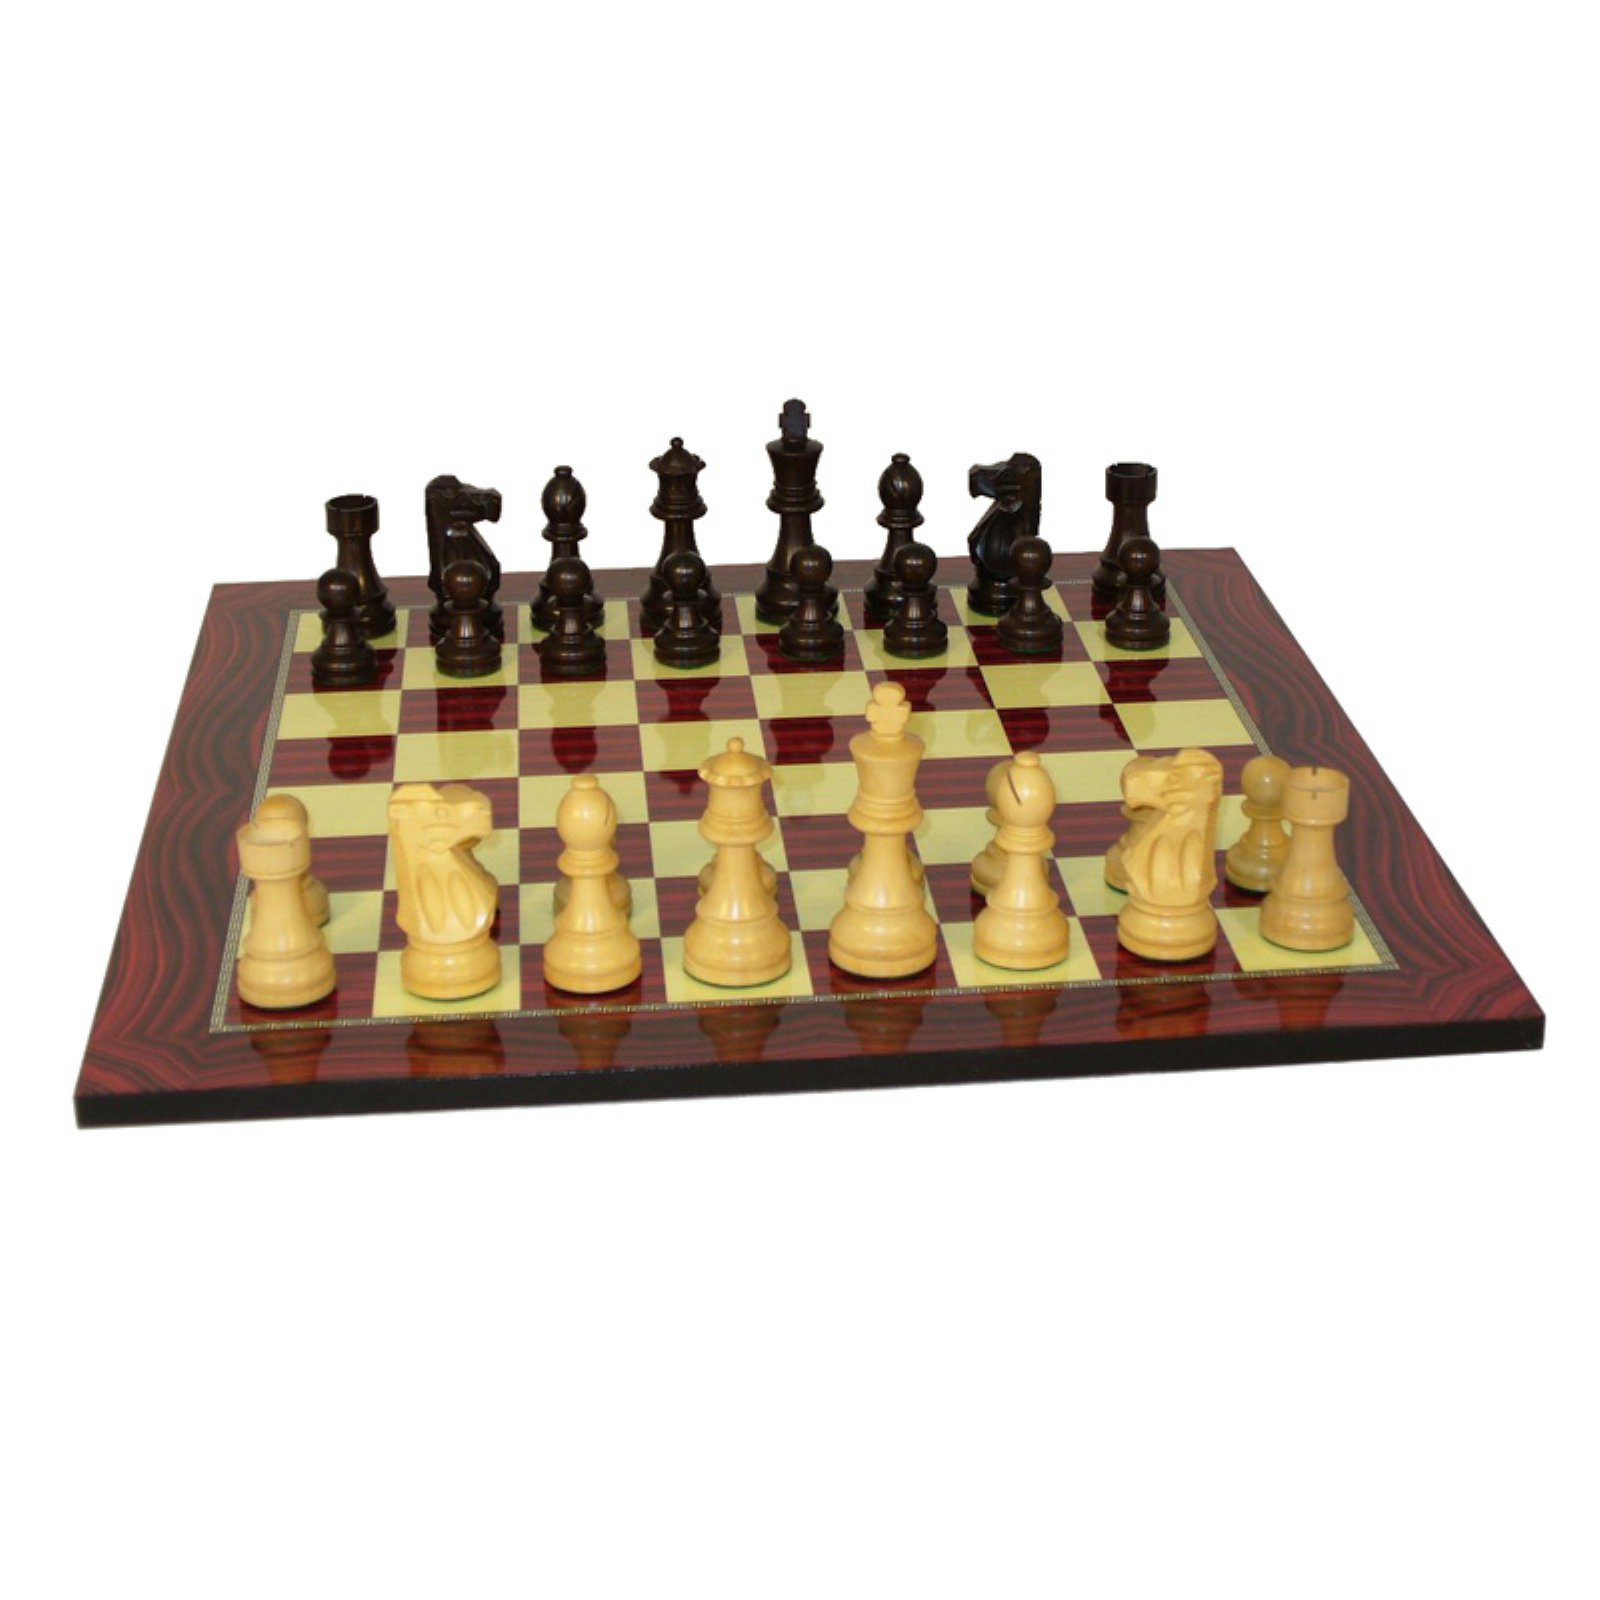 Black and Natural Boxwood Lardy Chessmen on Red Woodgrain Print Chess Board